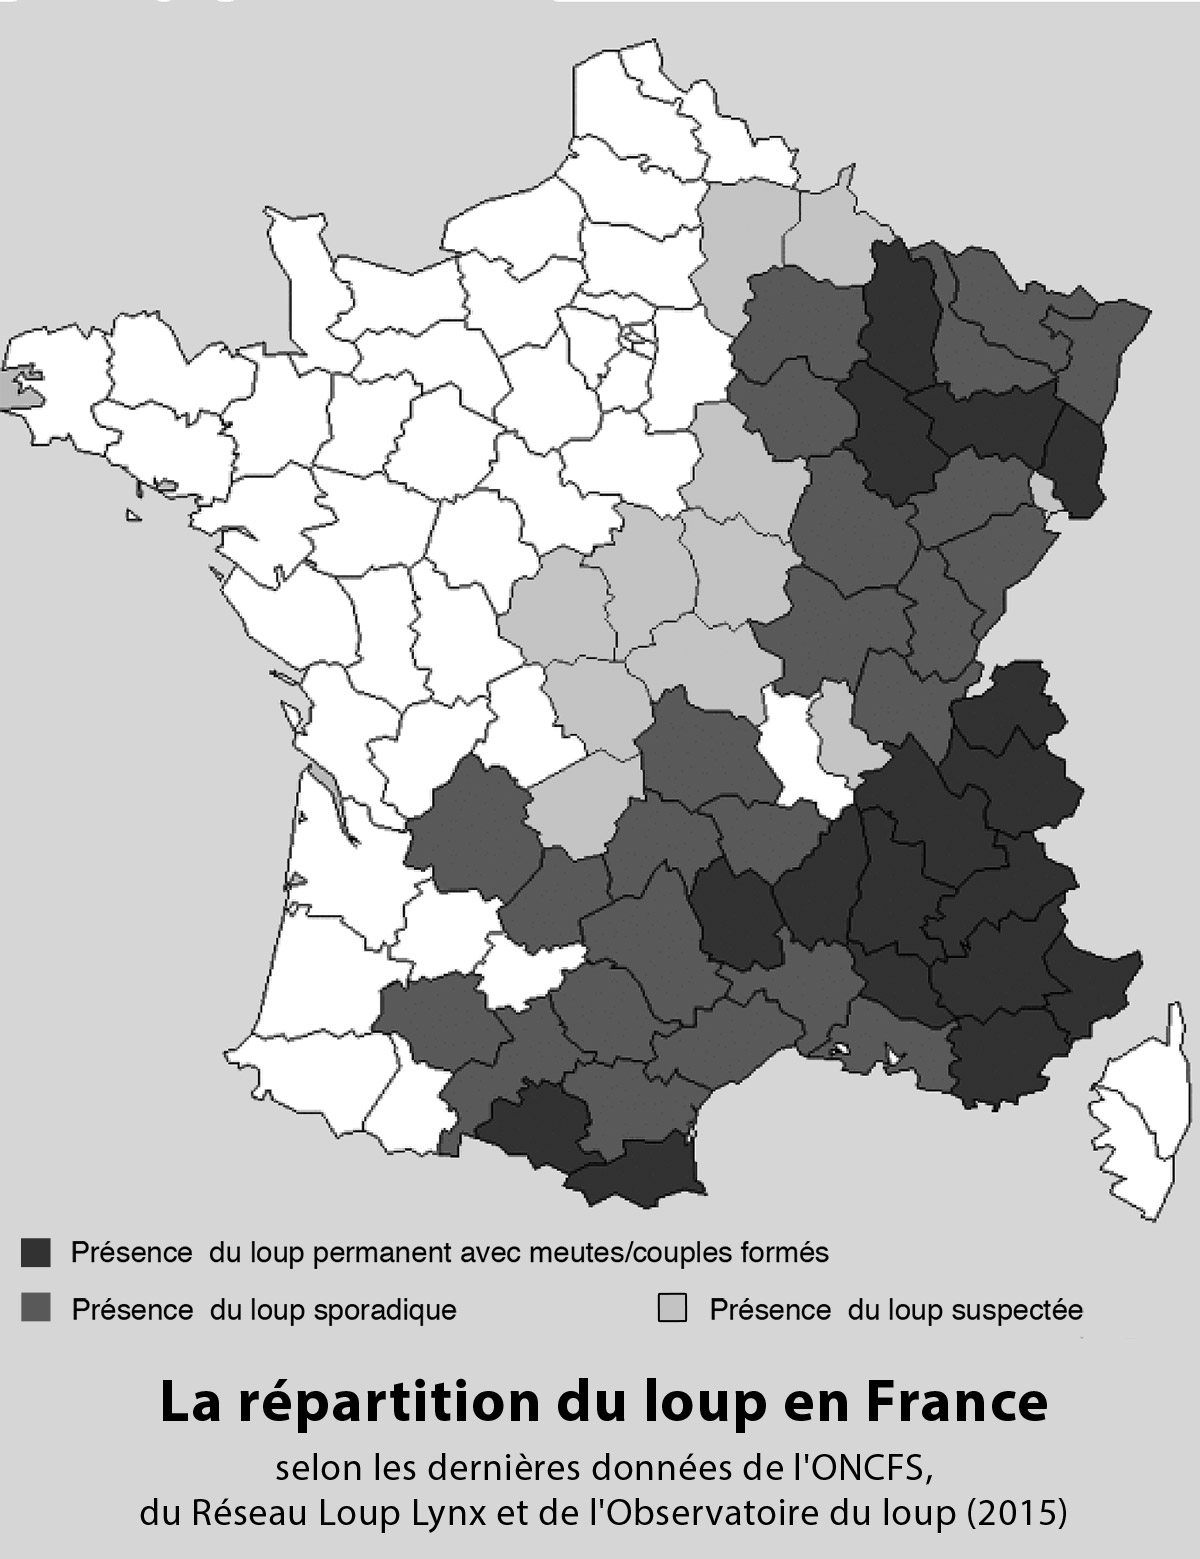 repartition du loup France 2015